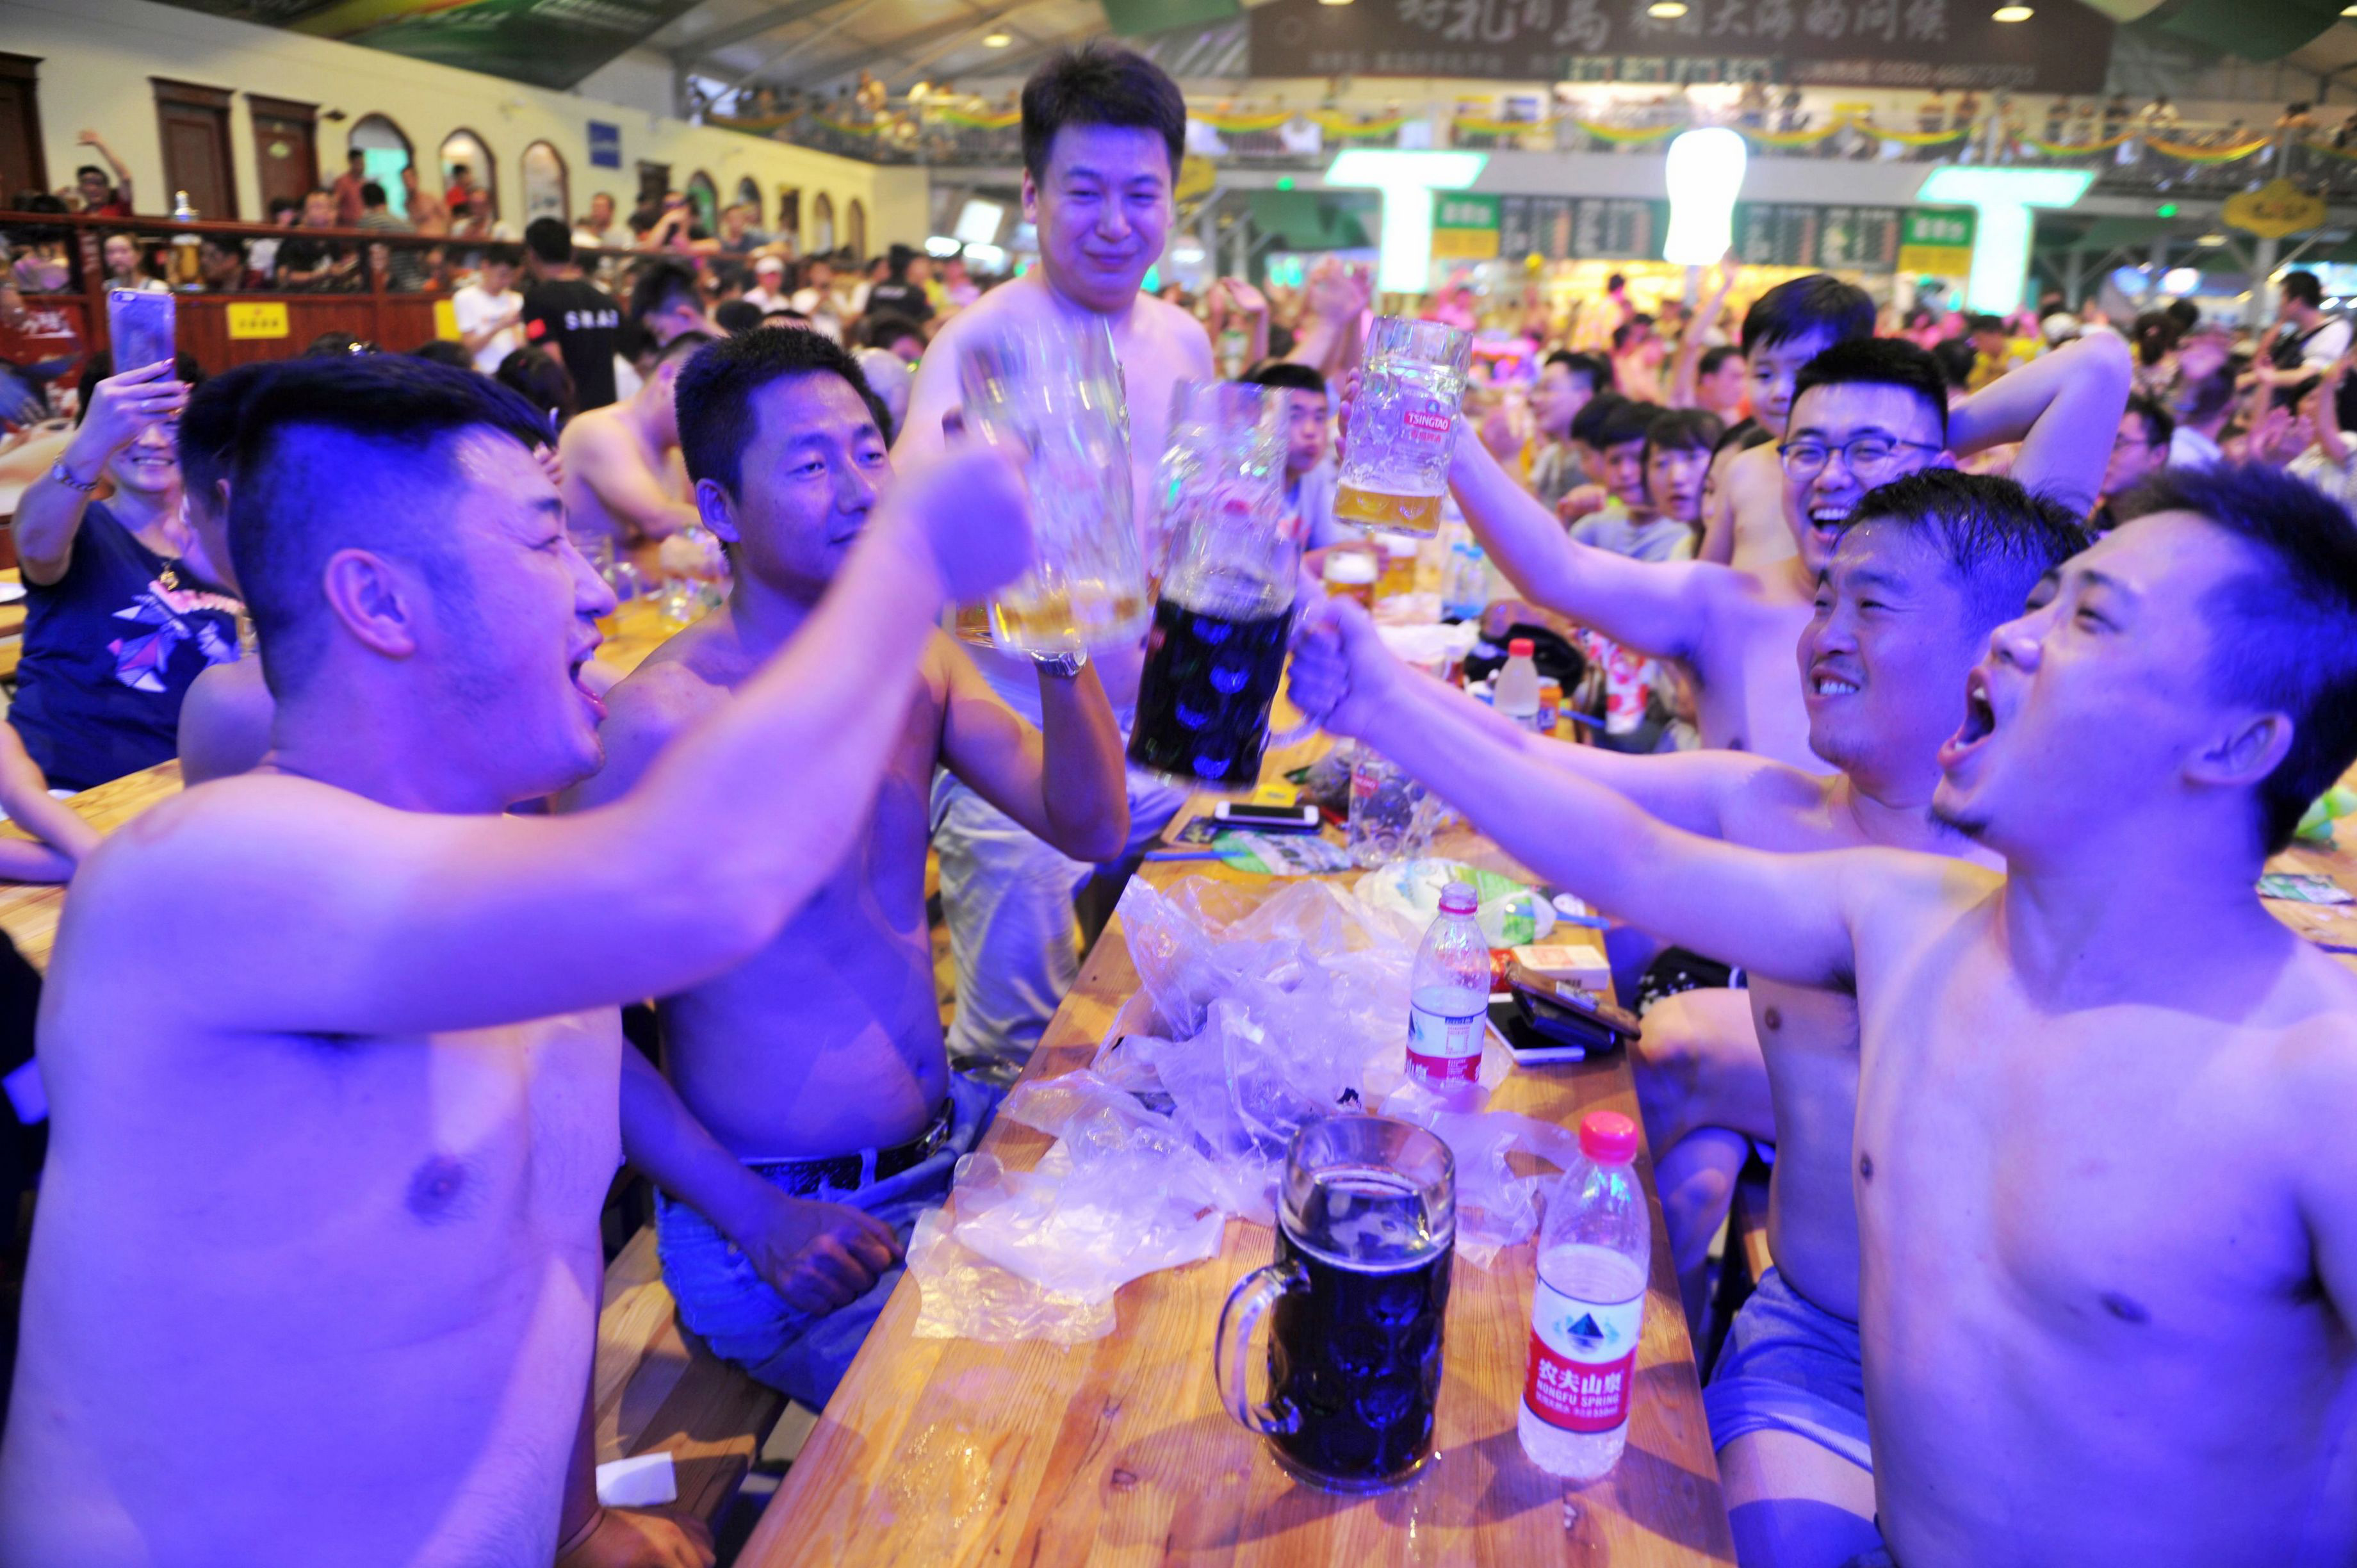 This photo taken on Aug. 7, 2017 shows people toasting at the annual Qingdao Beer Festival in China's eastern Shandong province.